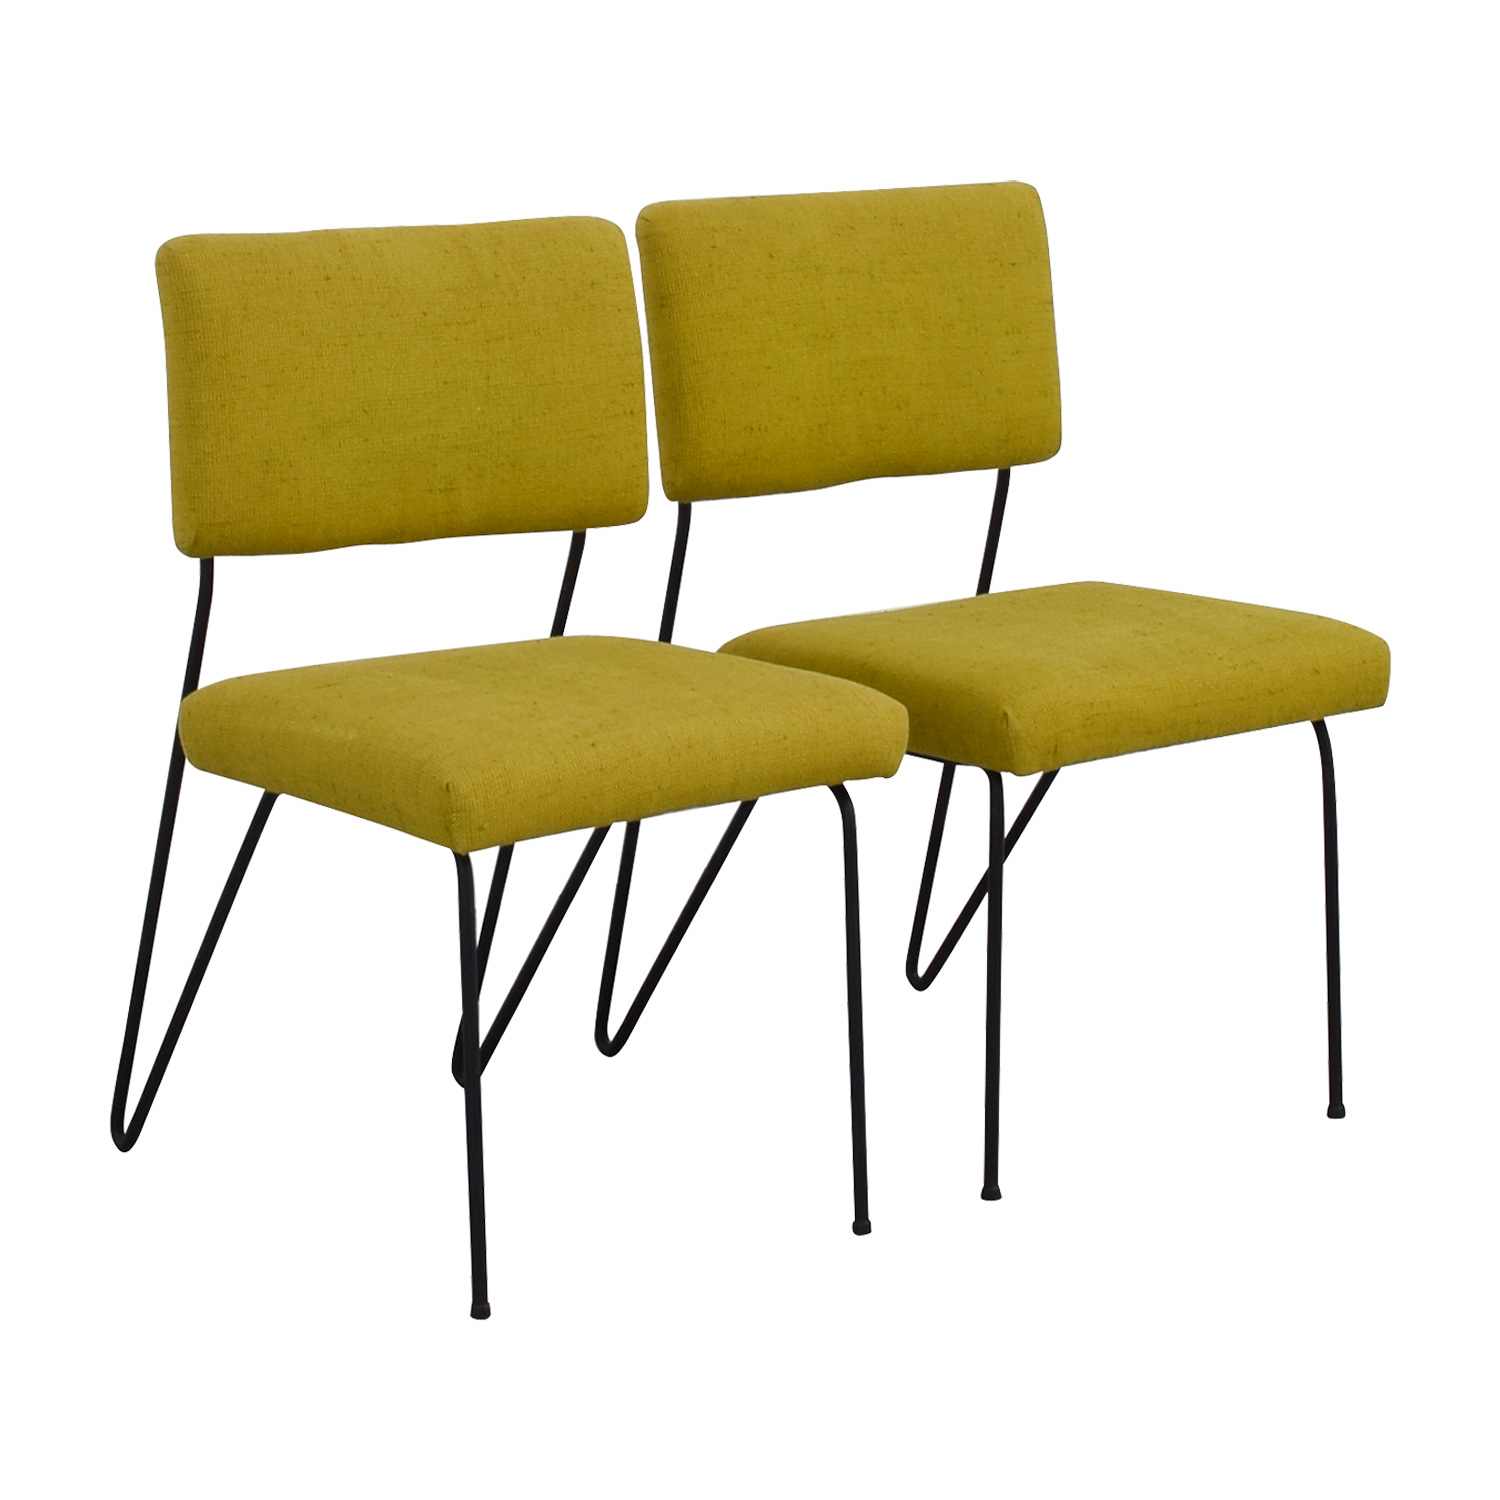 Furniture Masters Furniture Masters Green Fabric and Metal Chairs nyc